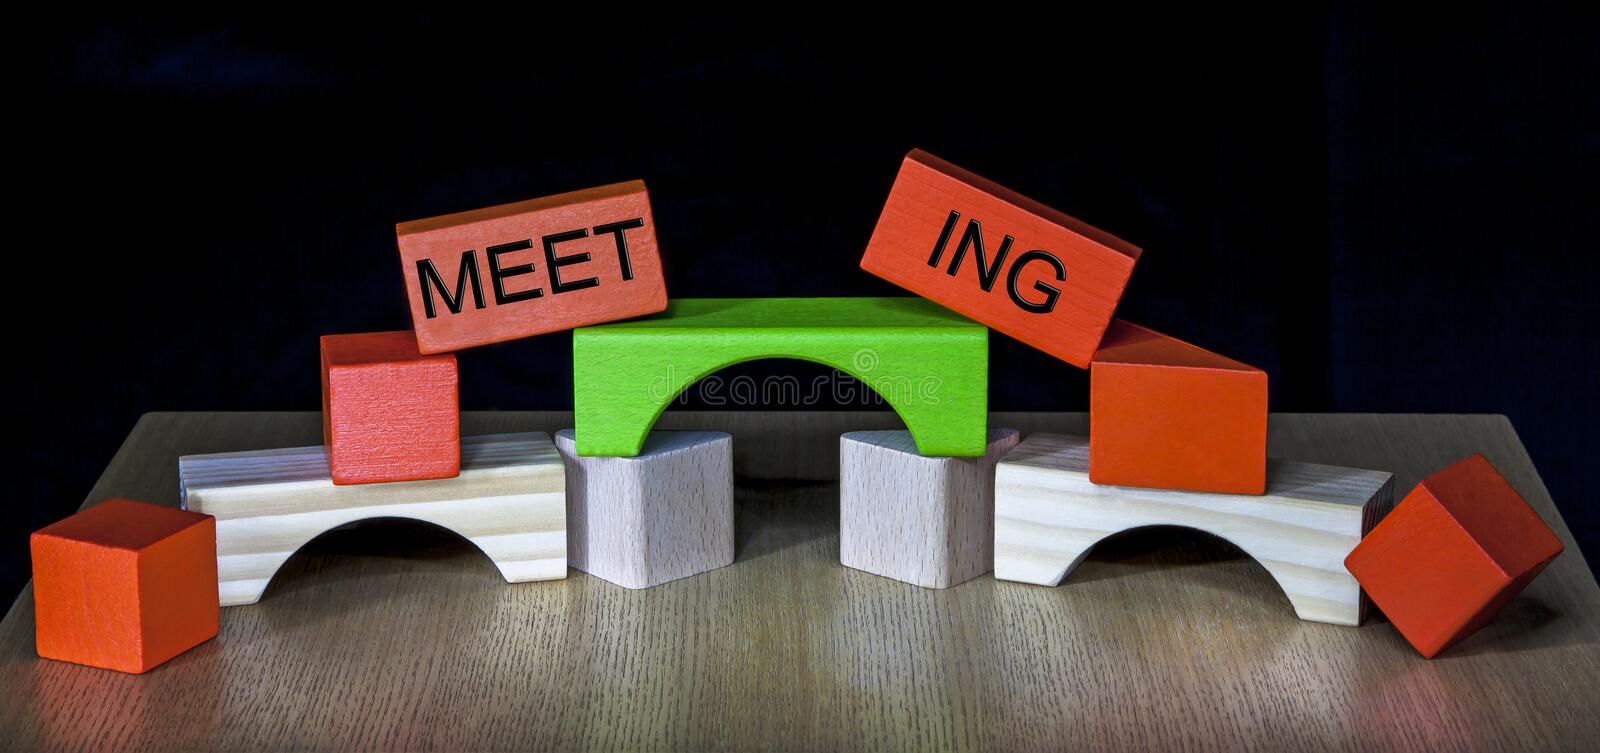 Download Business Meeting - Team Building Stock Image - Image: 33345929